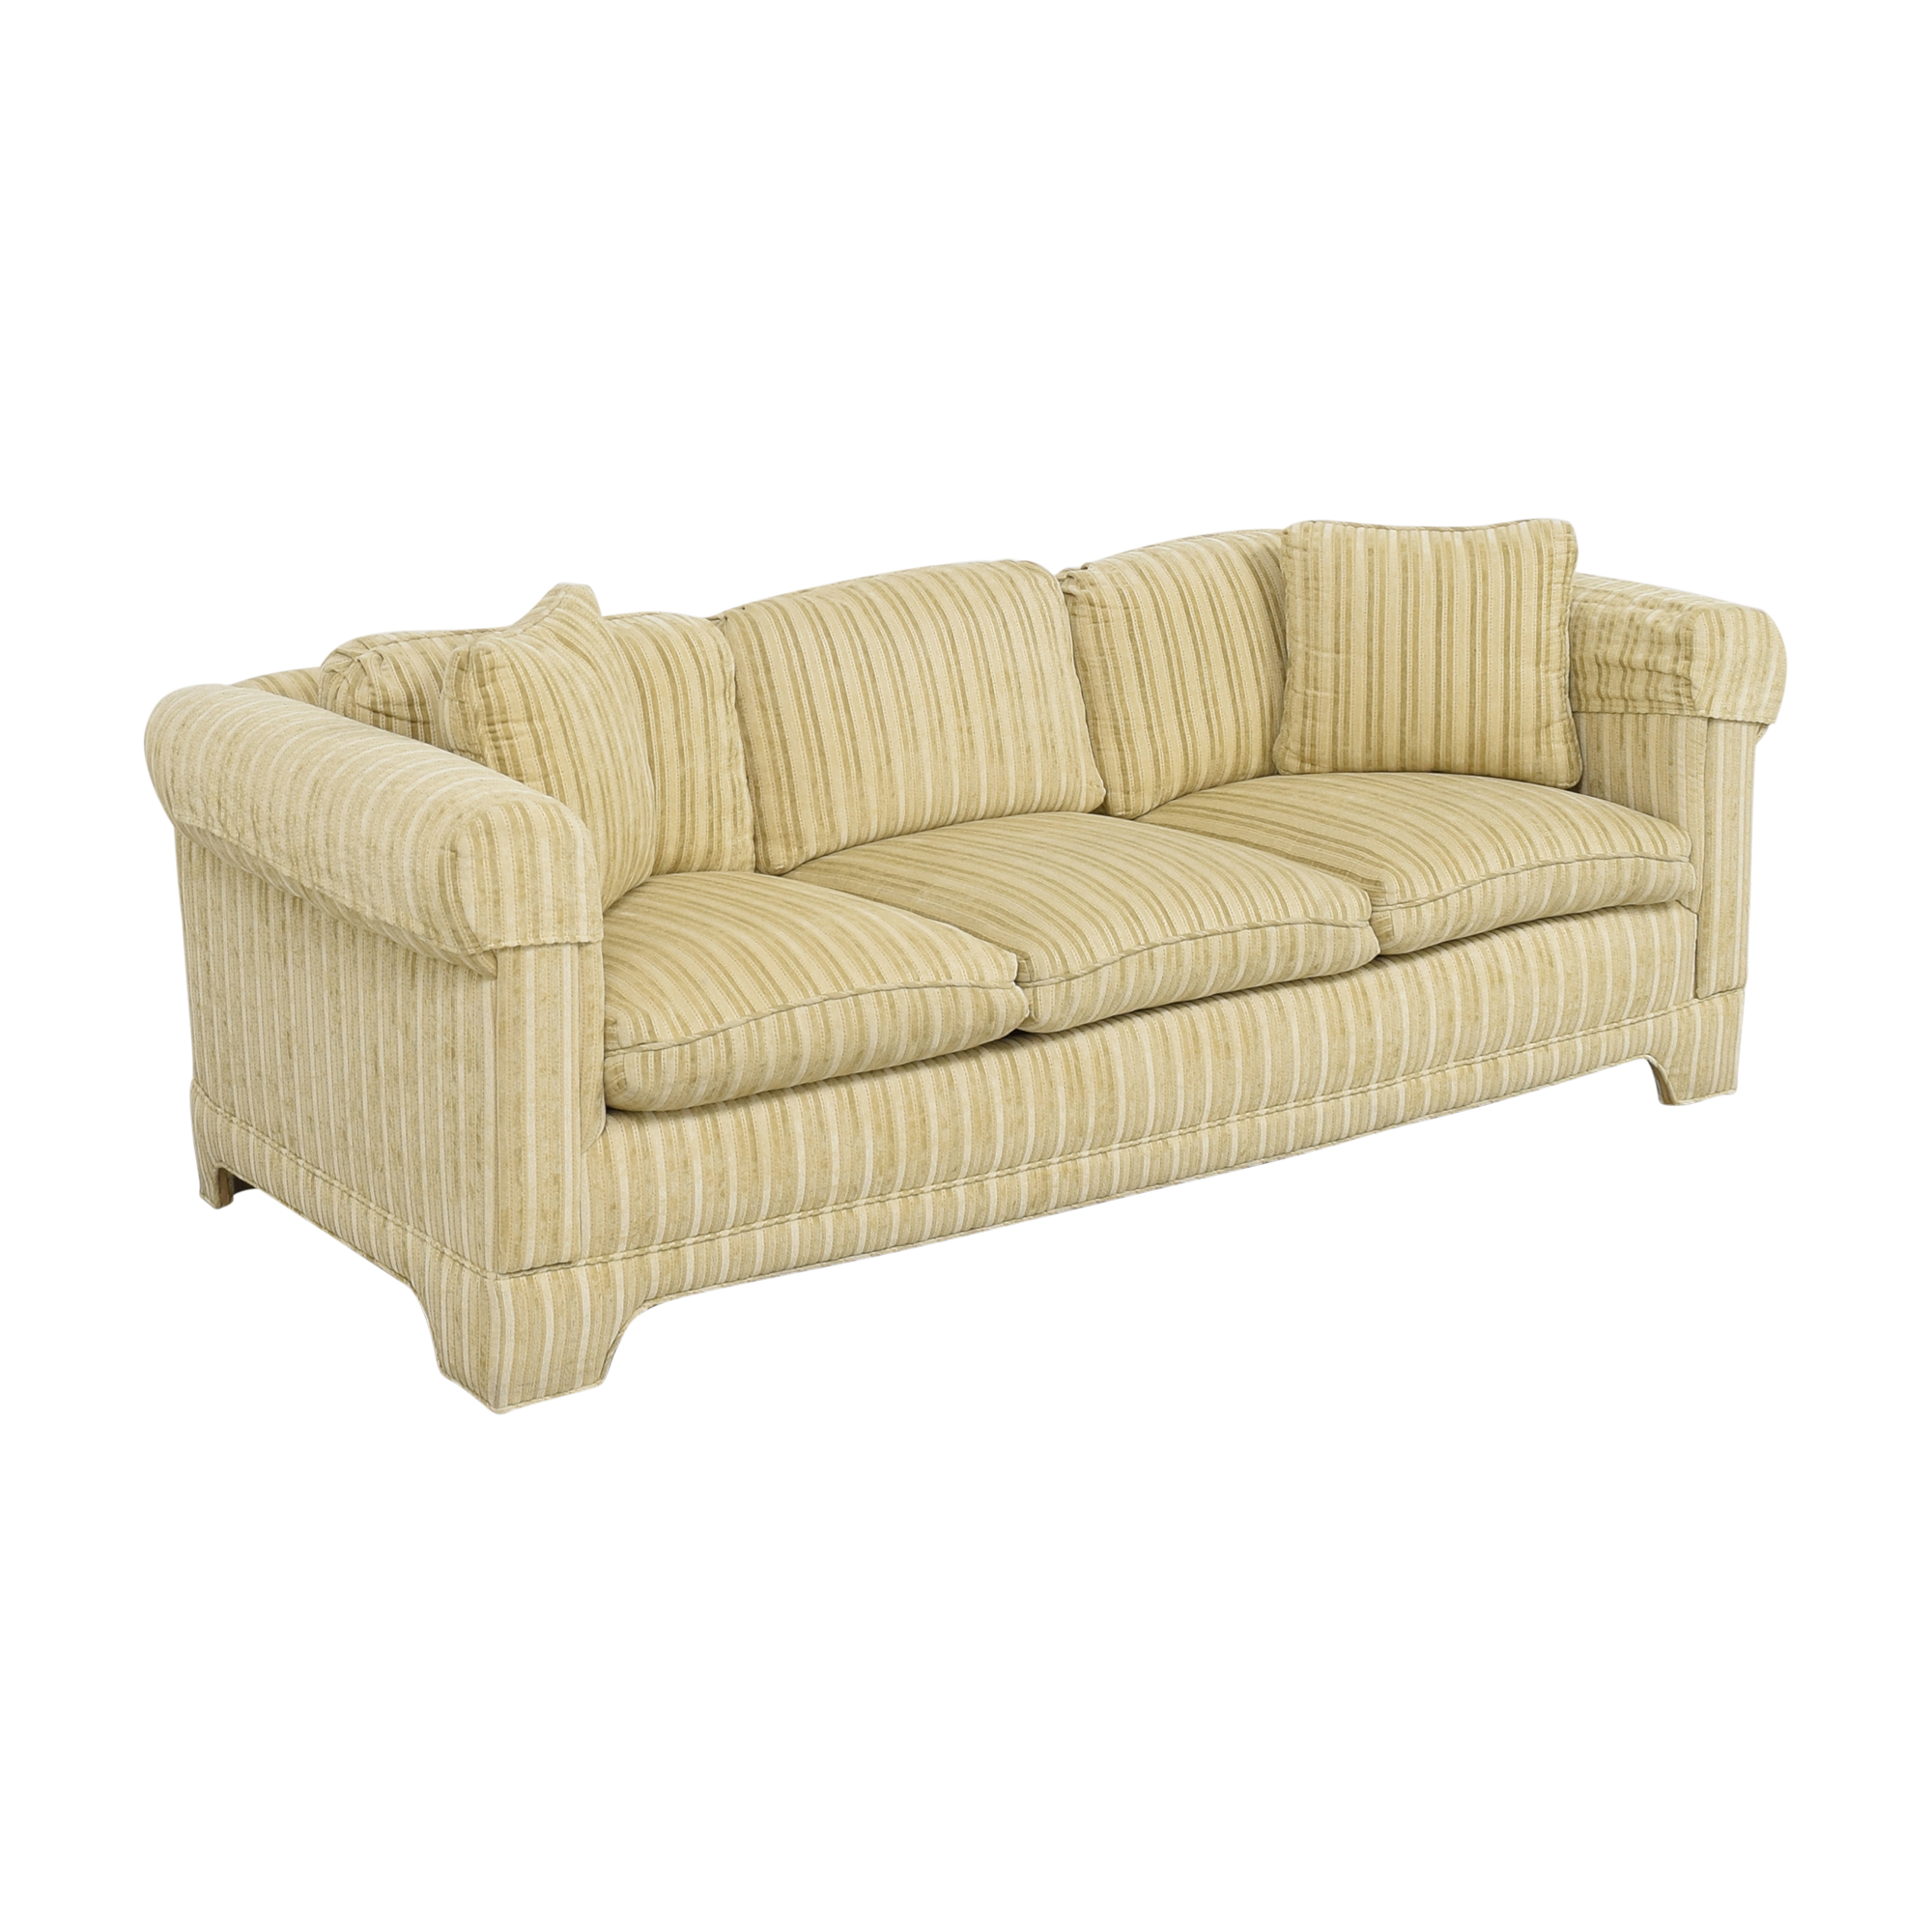 Cameo Collection Cameo Collection Stripe Sofa second hand